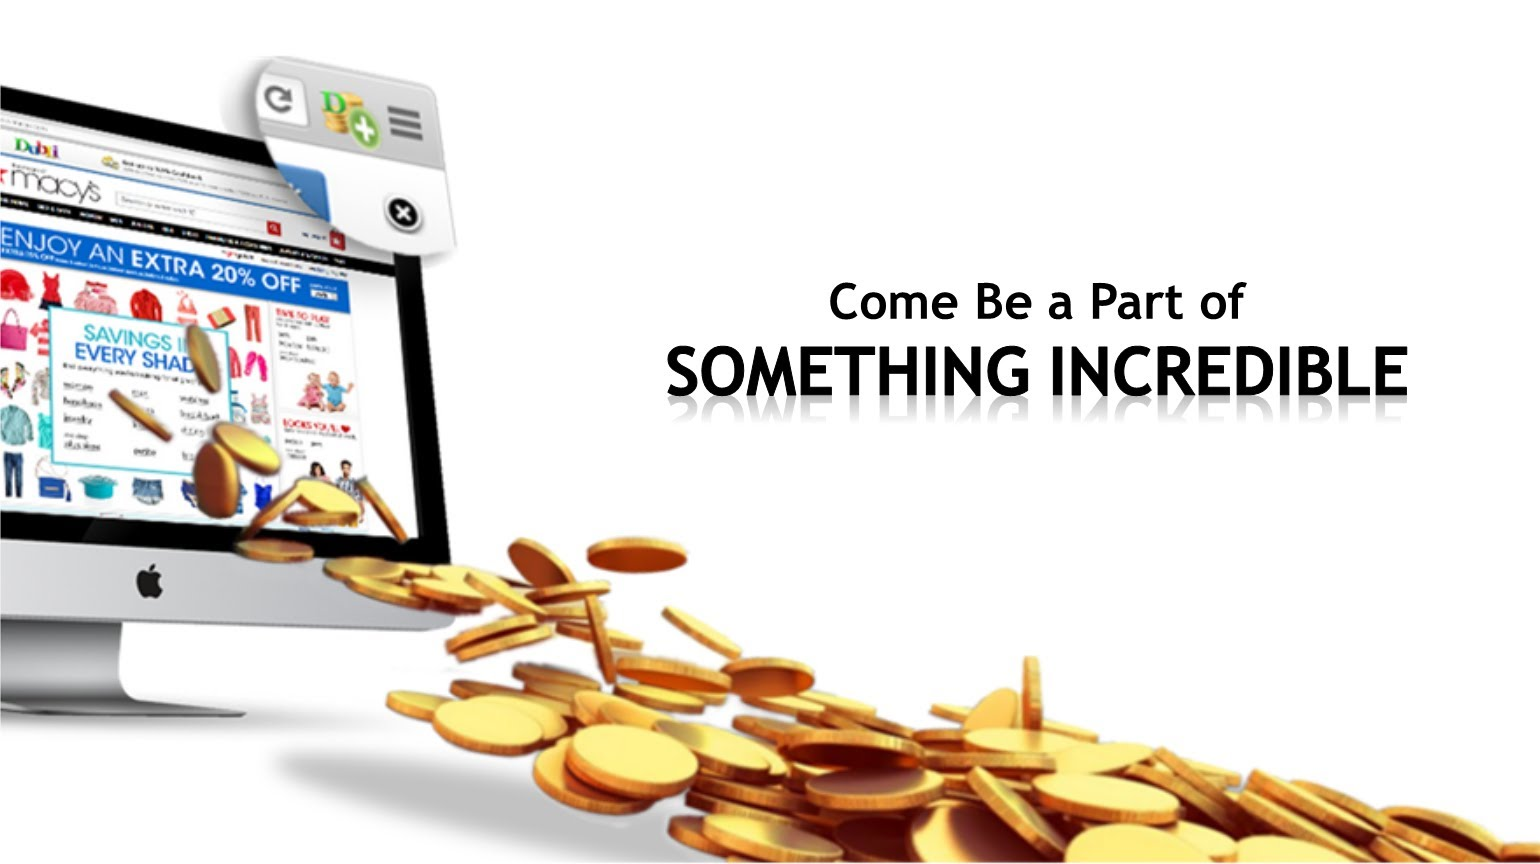 Cash back rebates network--online shopping to save money tools